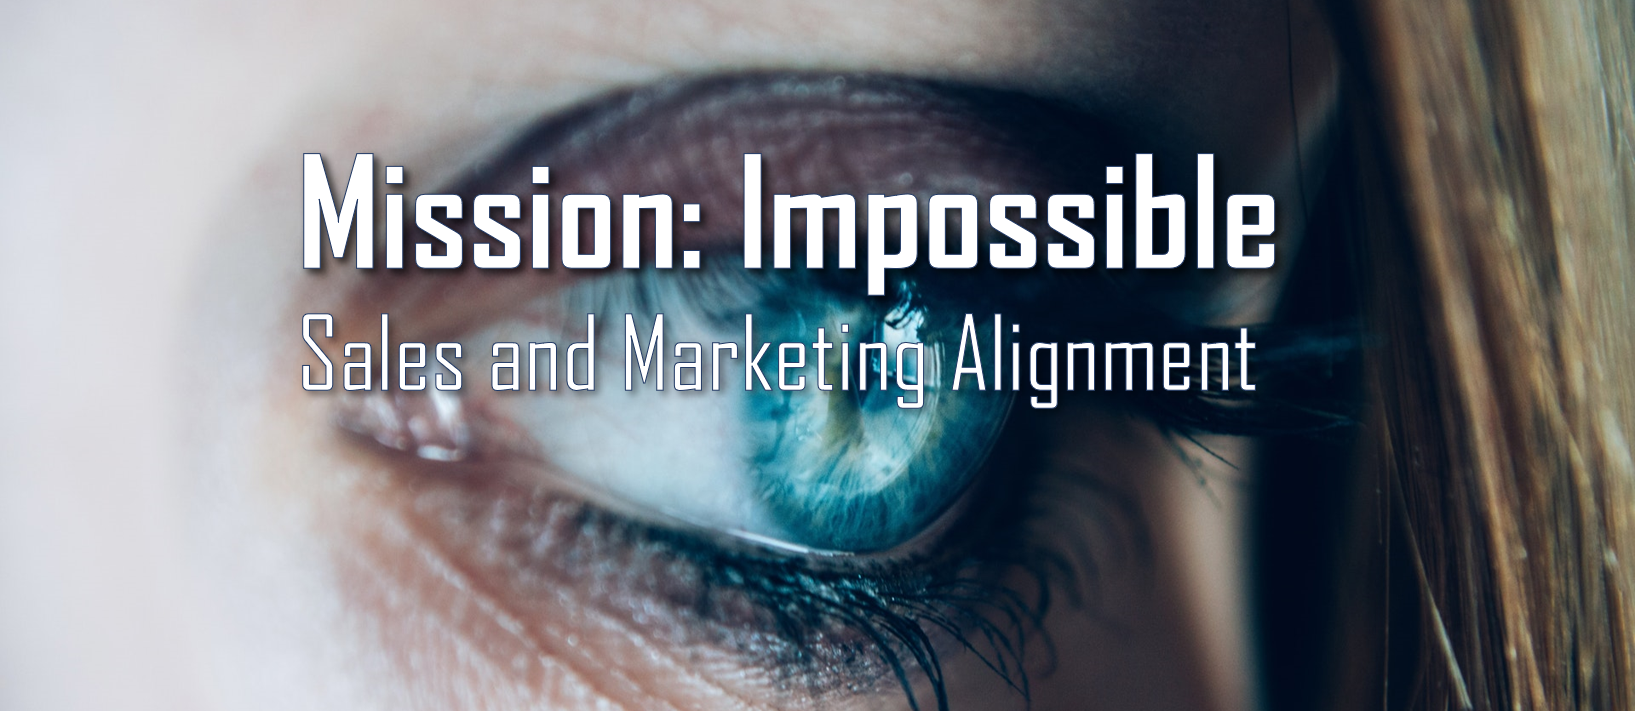 Mission Impossible sales and marketing alignment cover image.png